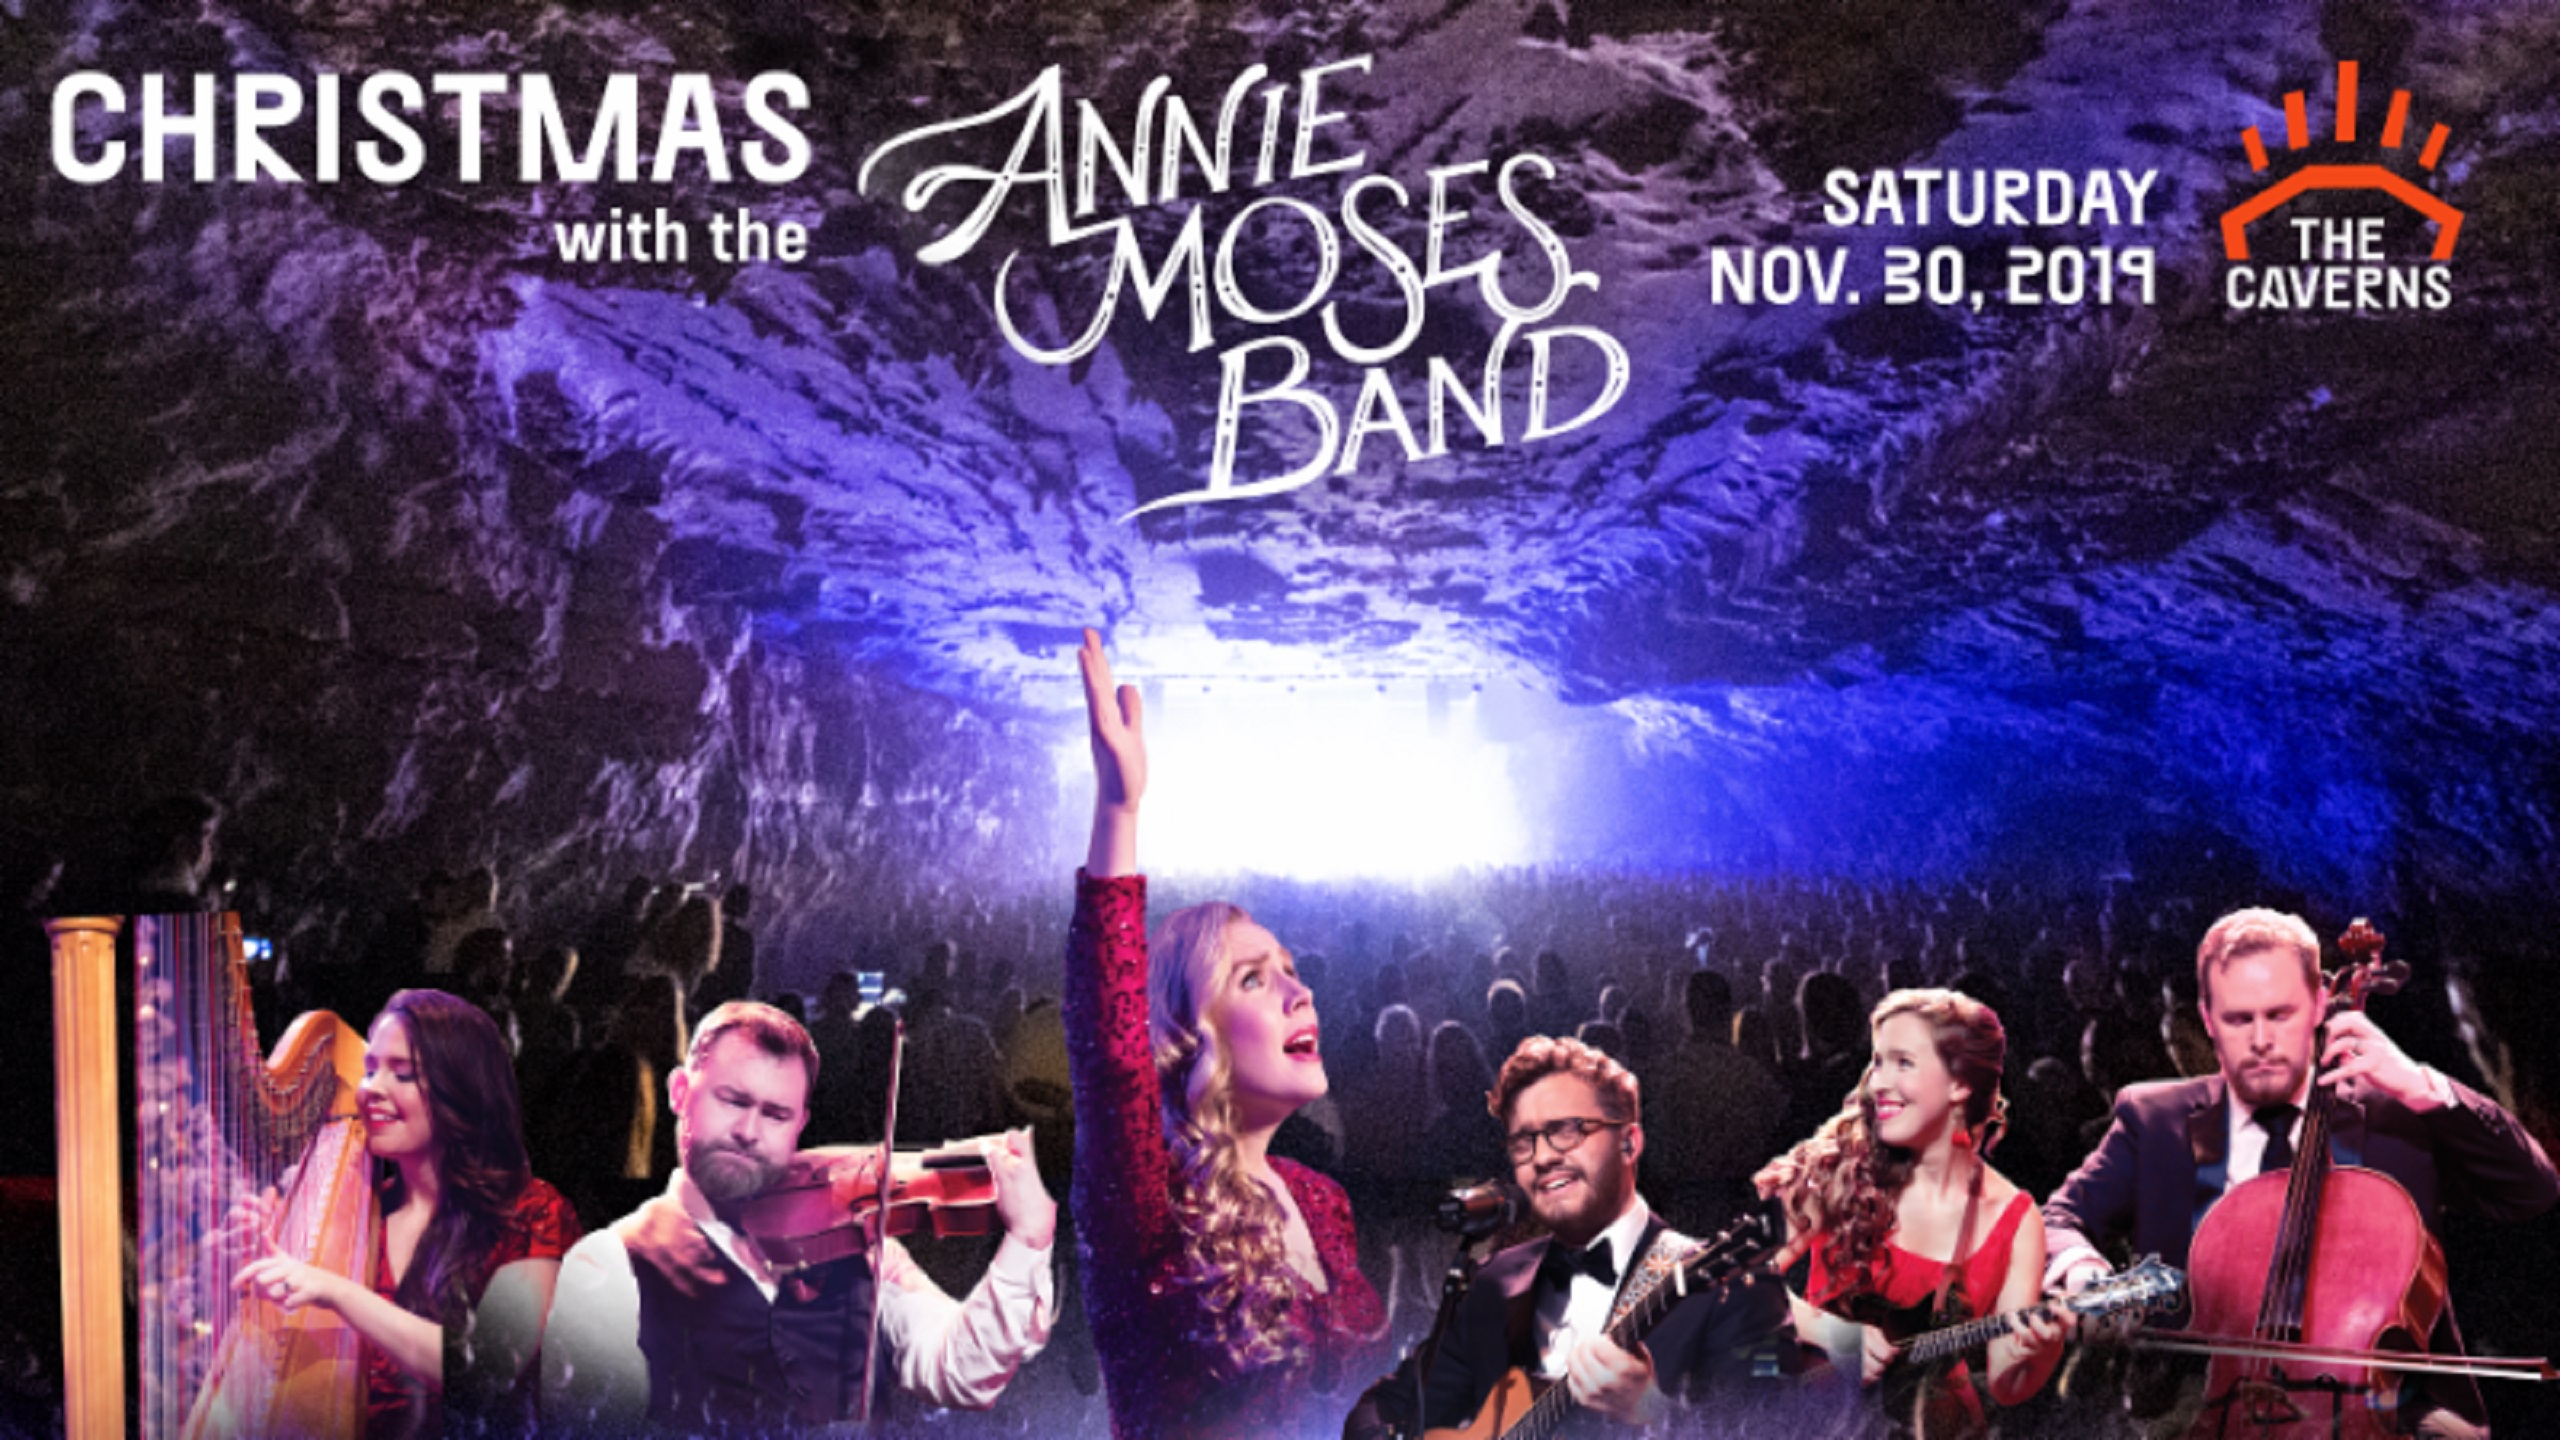 Coming to The Caverns: Christmas with the Annie Moses Band